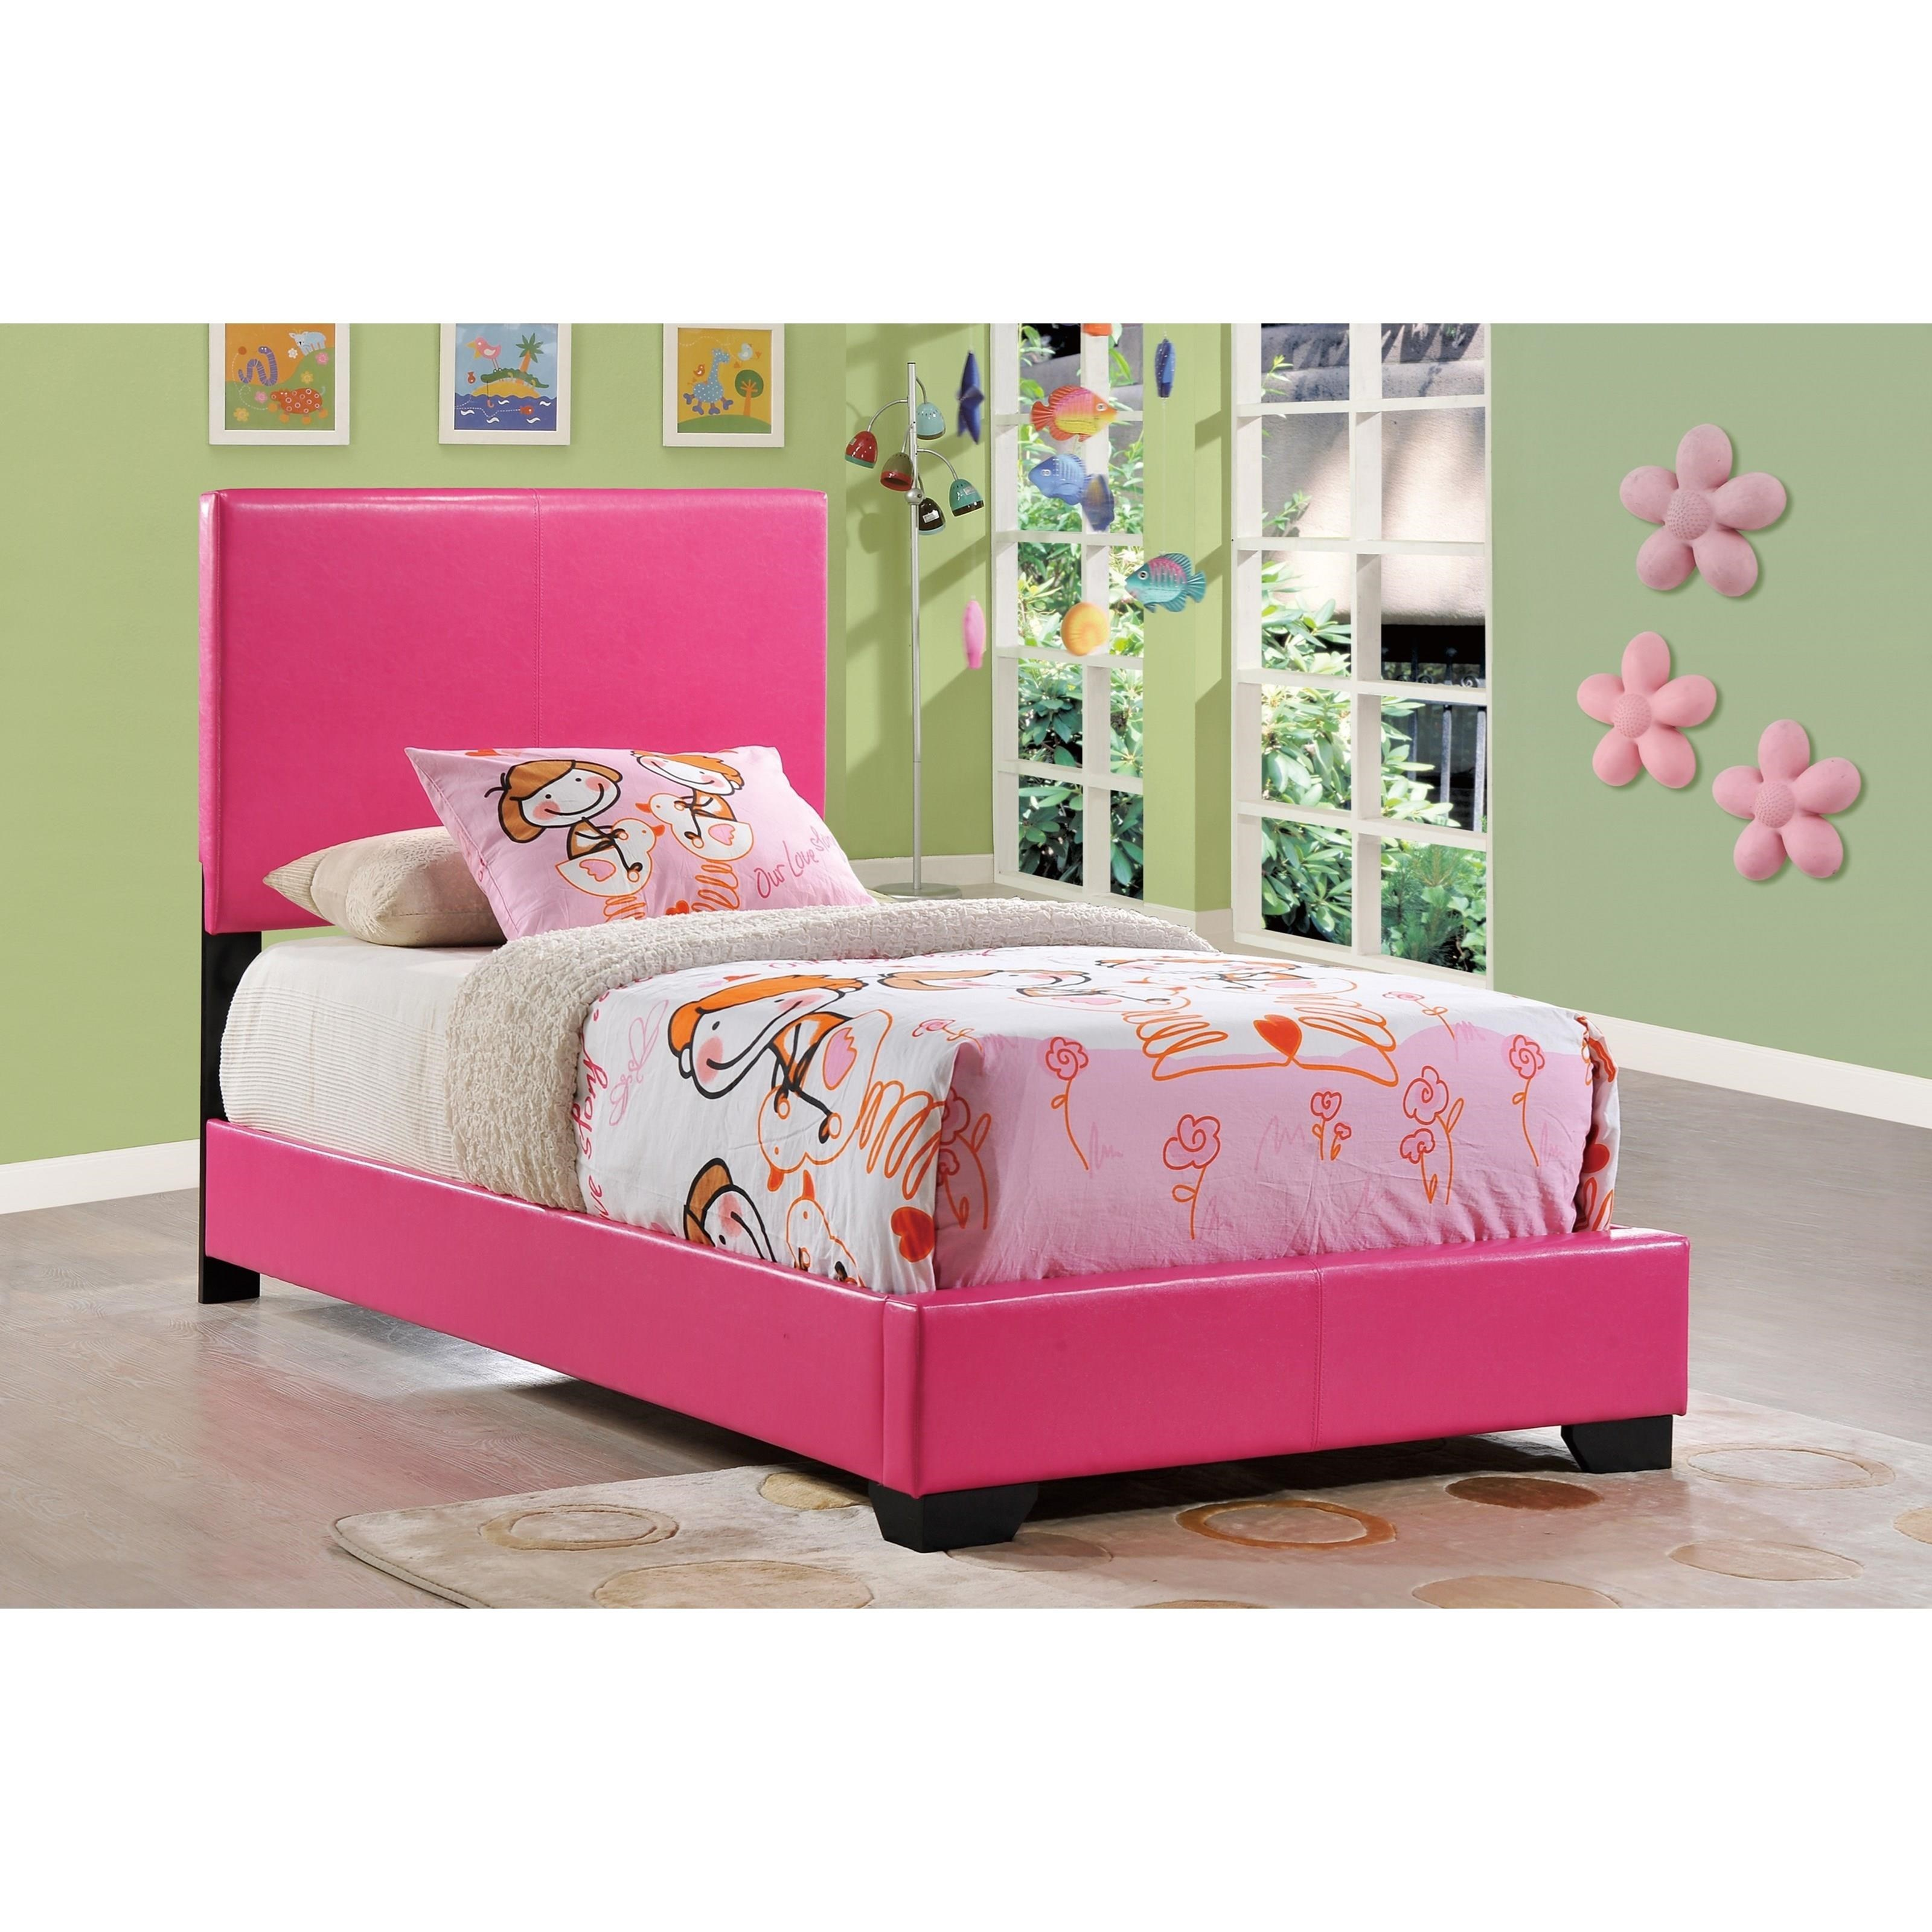 8103 Upholstered Twin Bed by Global Furniture at Corner Furniture